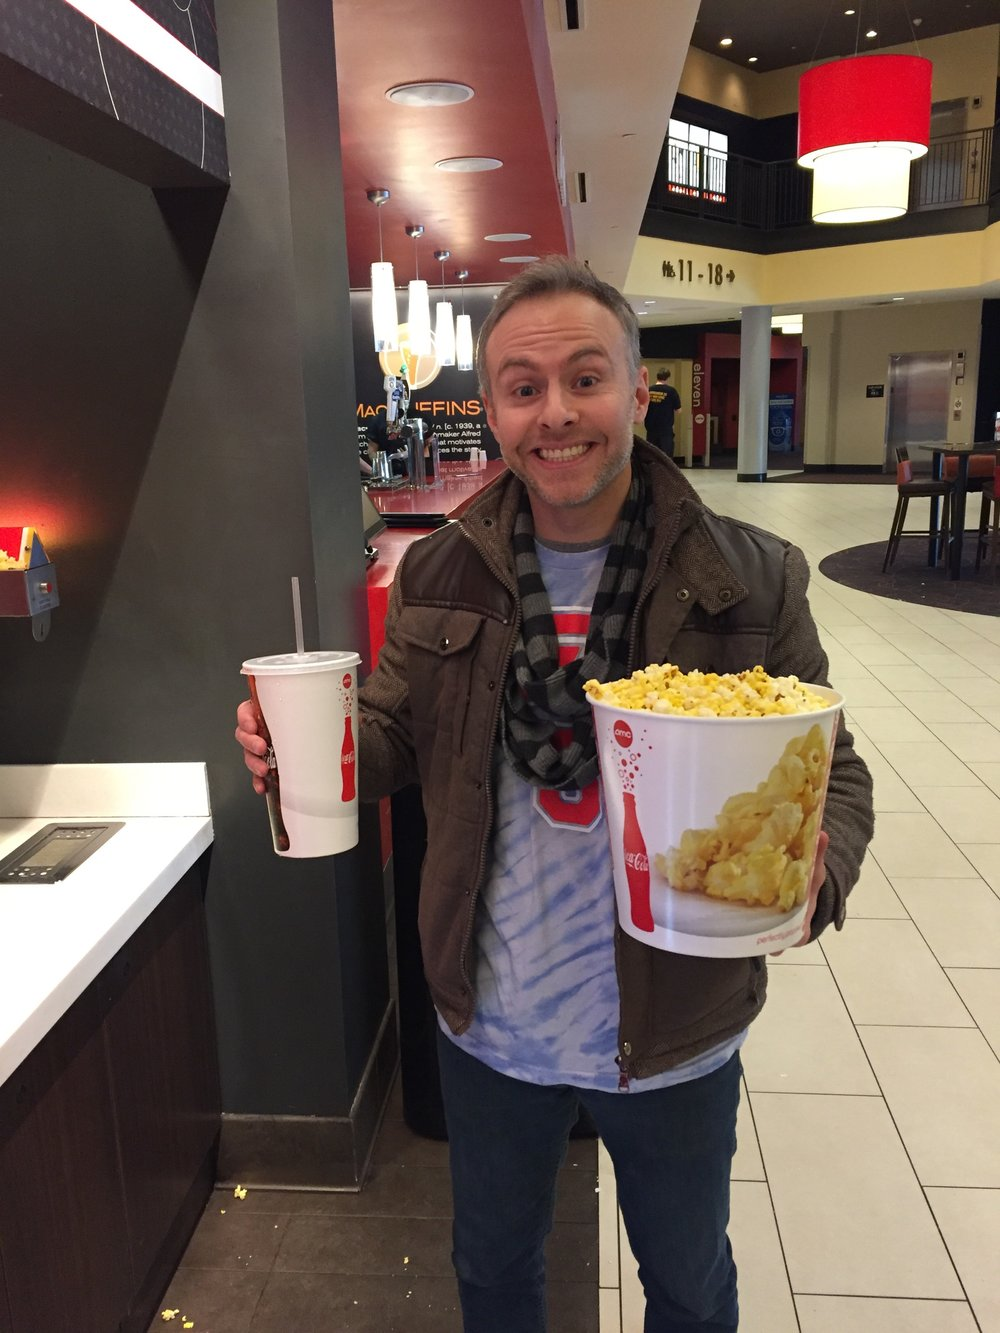 Andy doesn't normally get THAT big of a popcorn and pop, but he does LOVE going to the movies